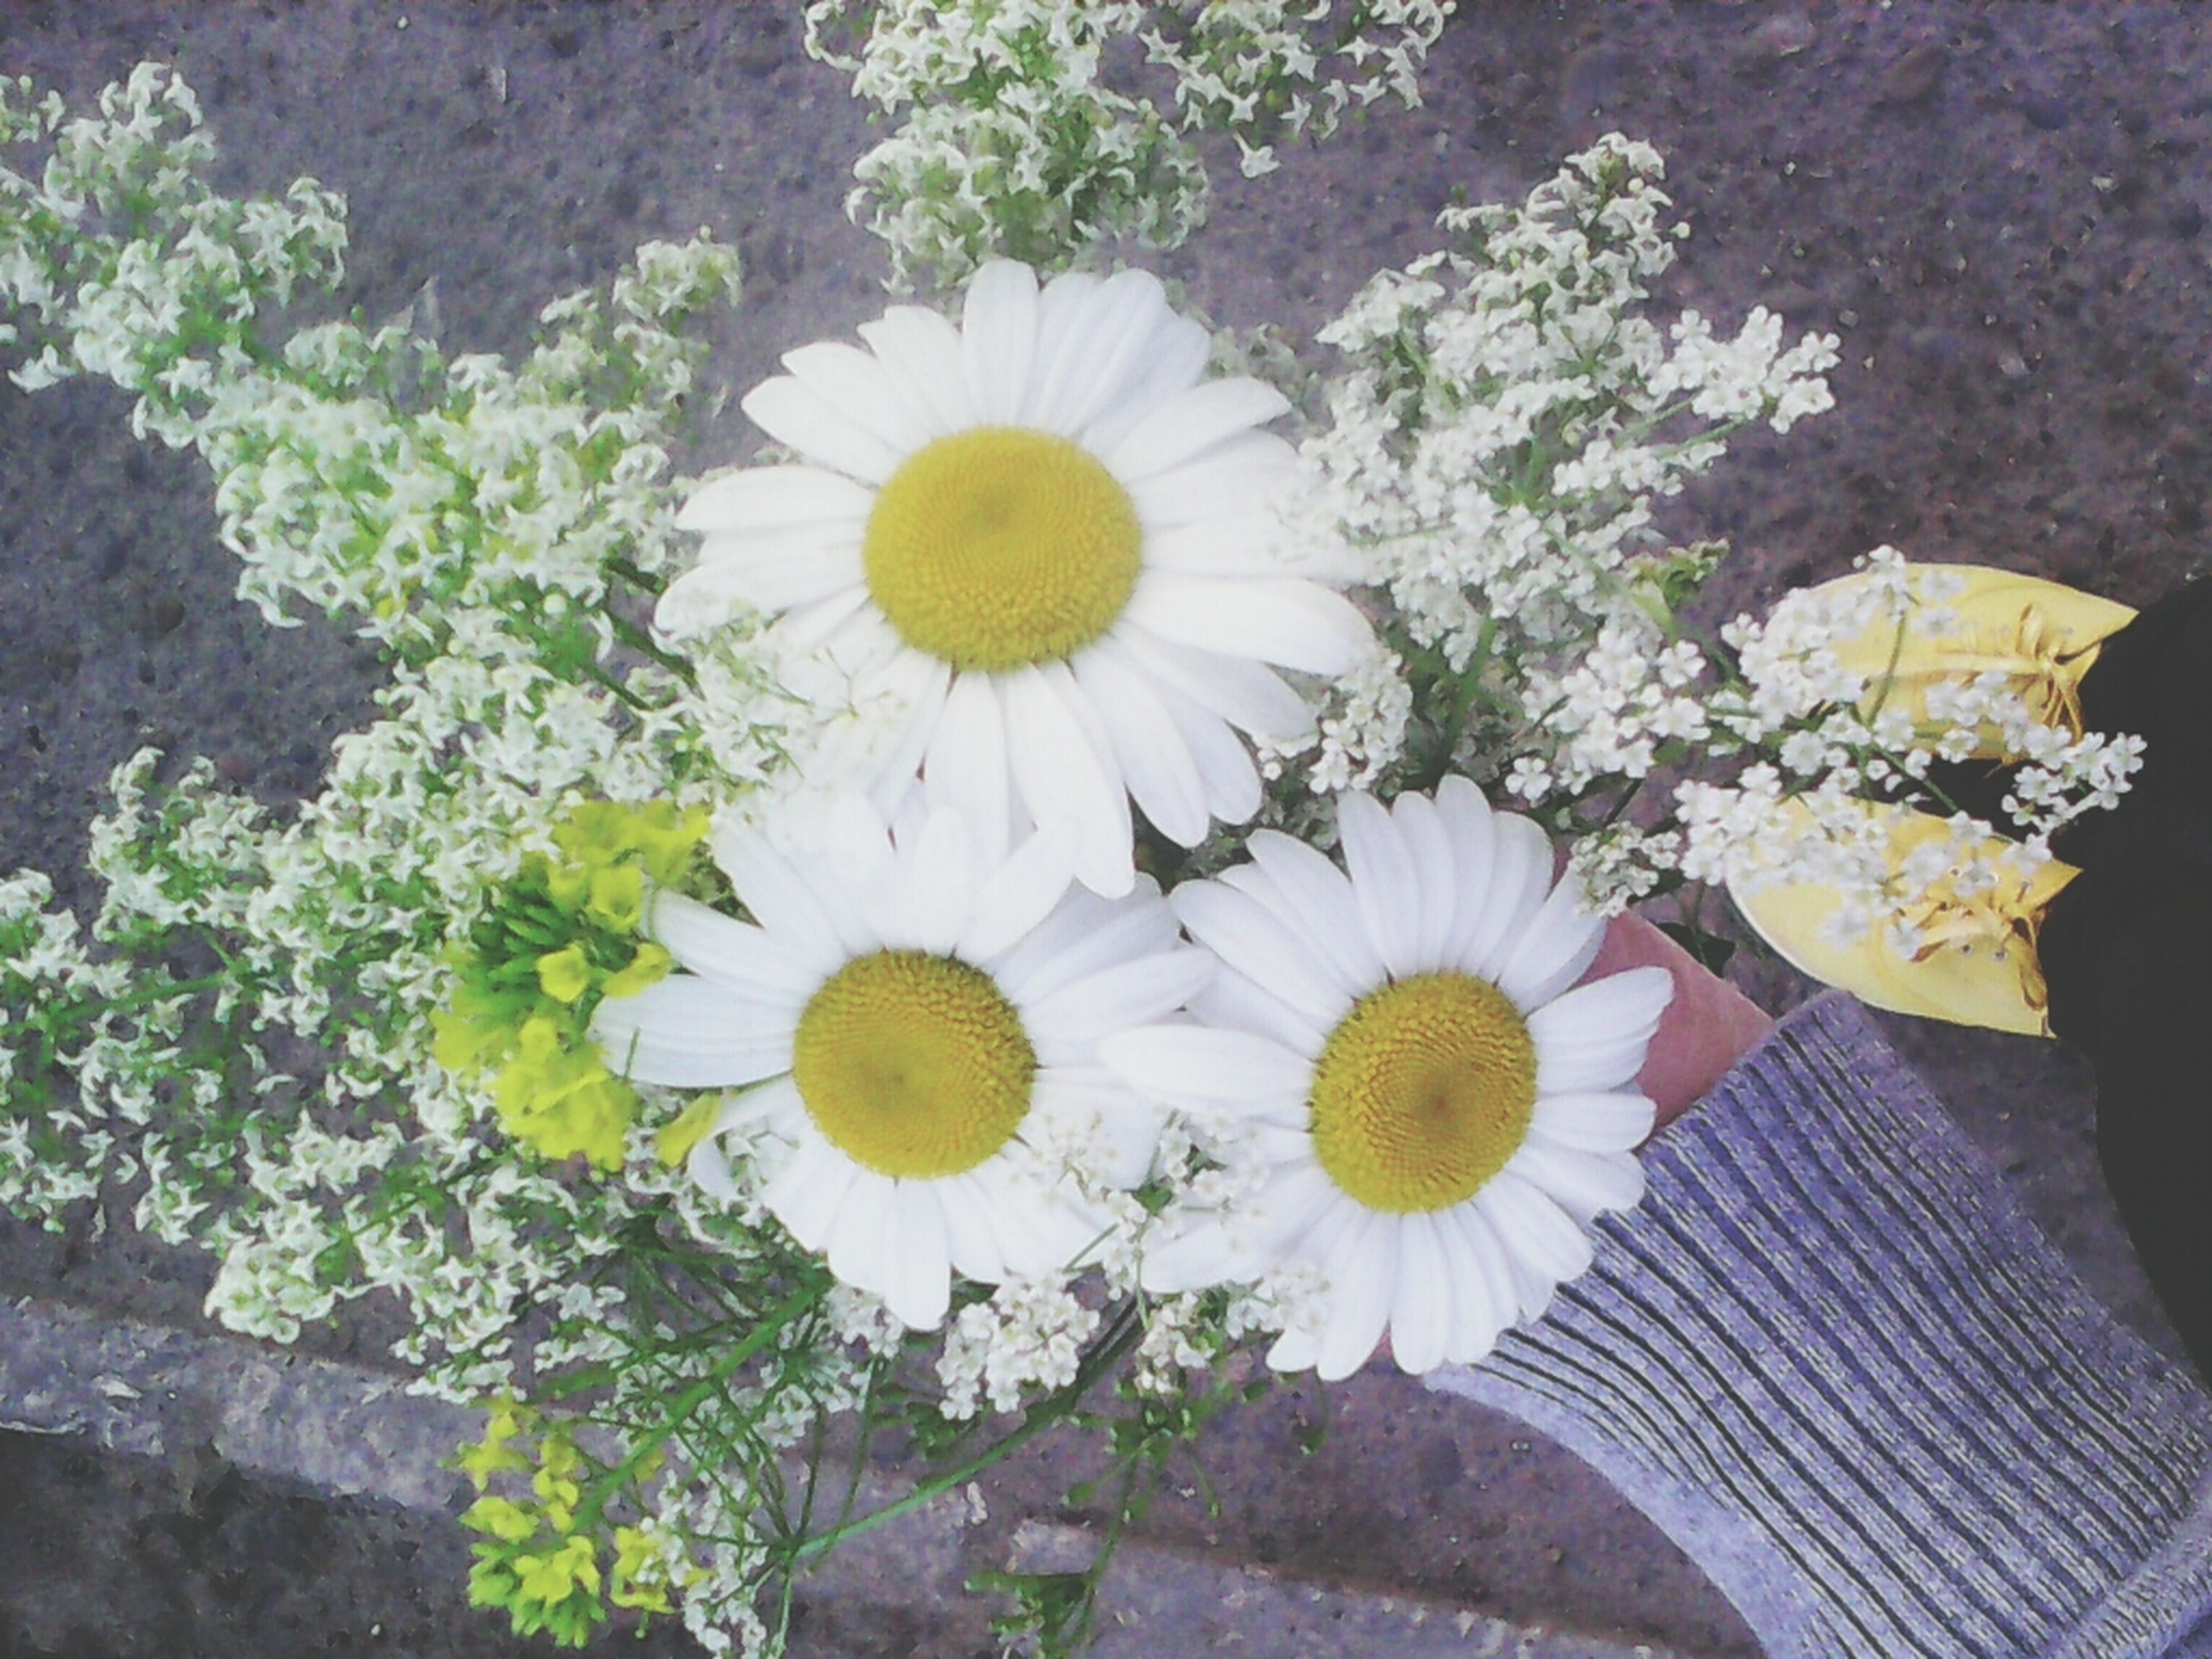 flower, freshness, fragility, petal, flower head, growth, high angle view, beauty in nature, white color, plant, blooming, daisy, nature, yellow, in bloom, pollen, leaf, field, day, blossom